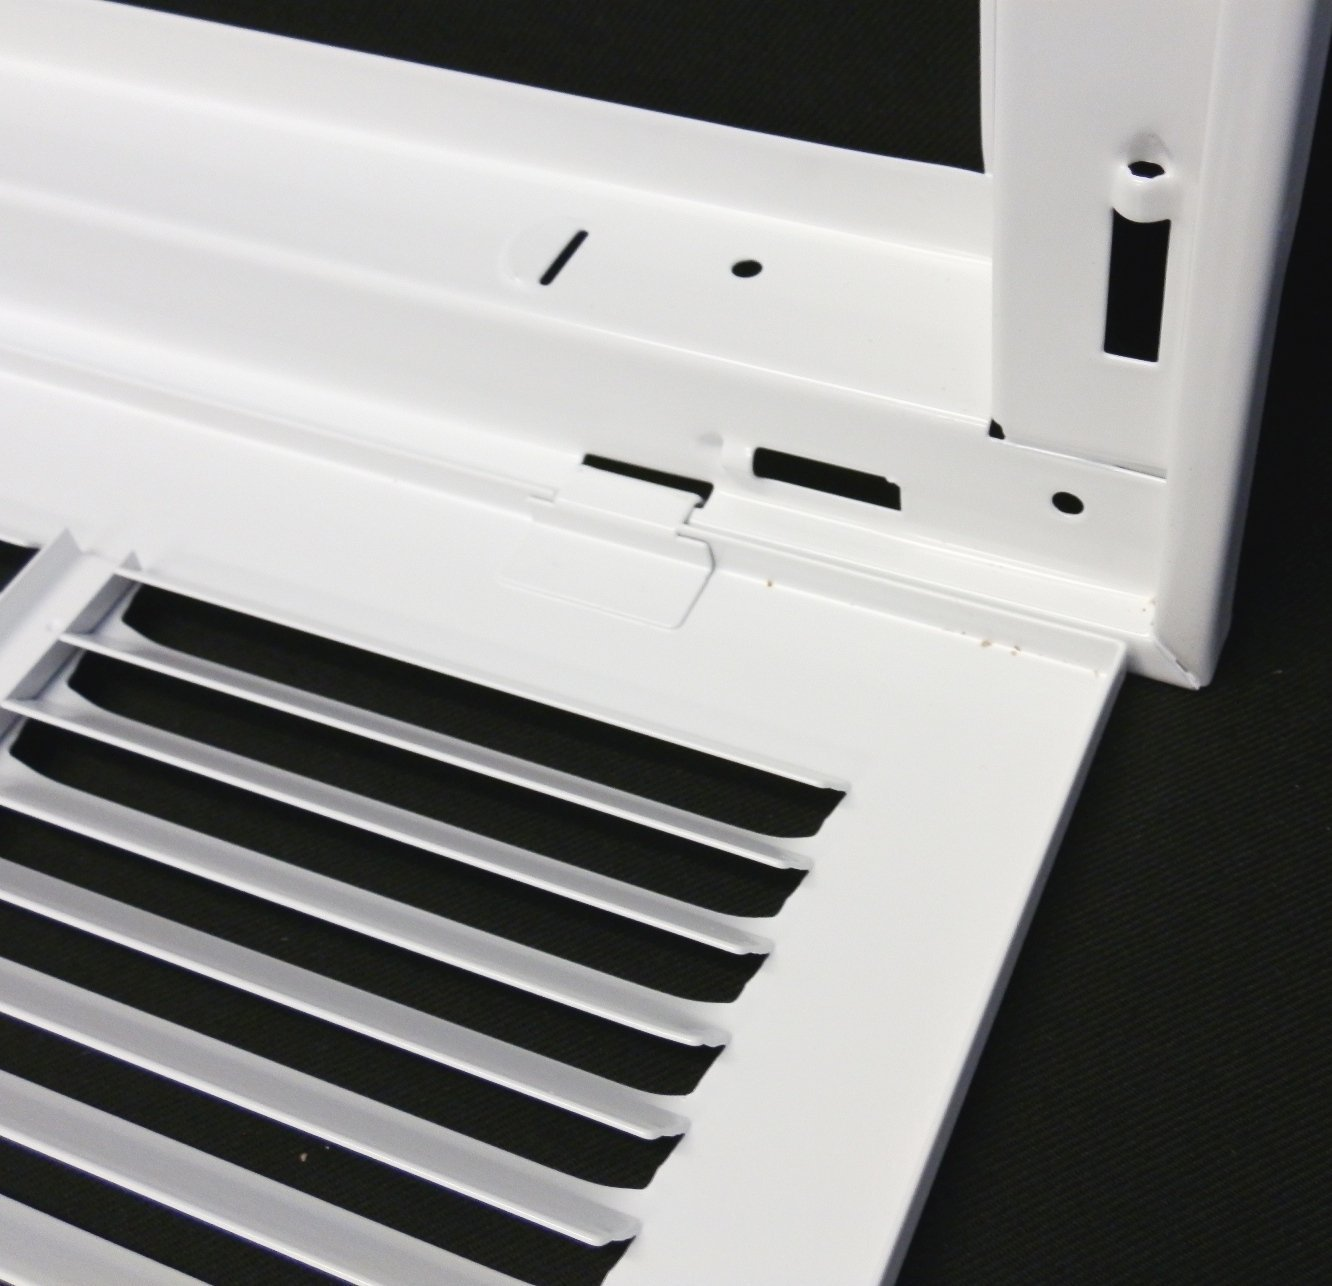 30'' X 14 Steel Return Air Filter Grille for 1'' Filter - Removable Face/Door - HVAC DUCT COVER - Flat Stamped Face - White [Outer Dimensions: 32.5''w X 16.5''h] by HVAC Premium (Image #6)